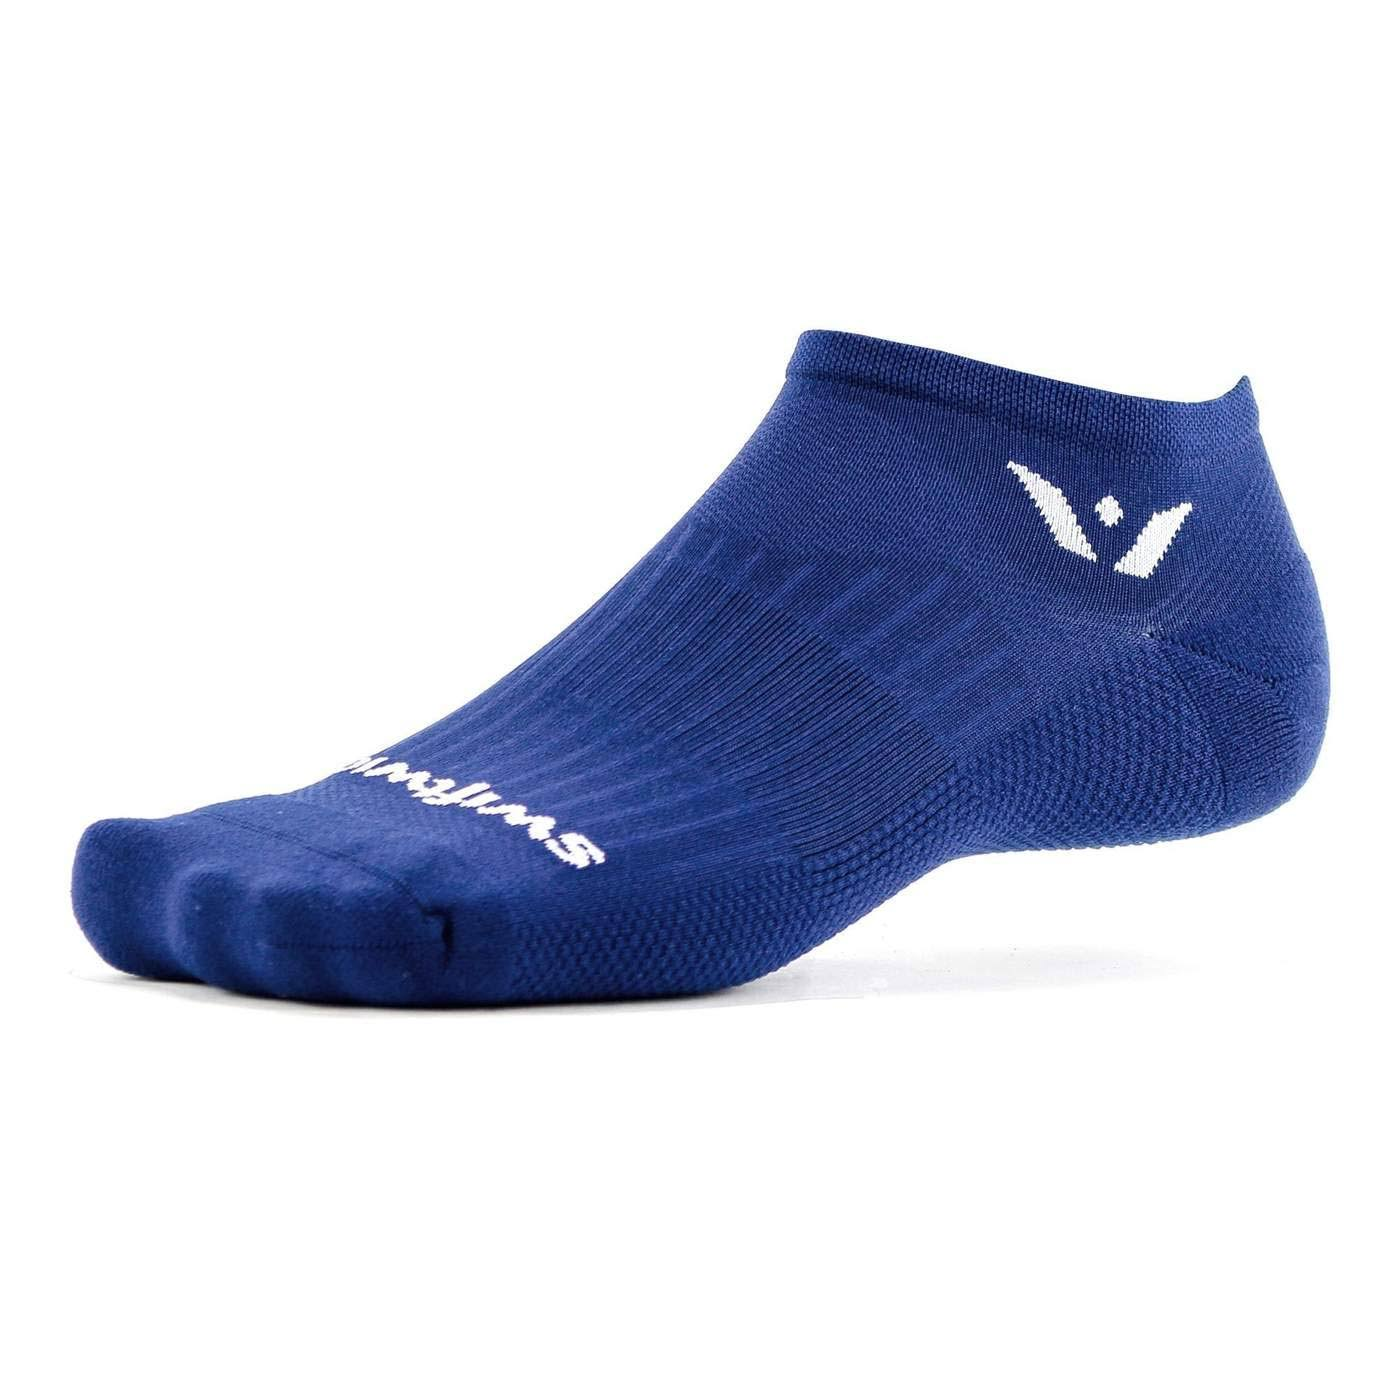 Swiftwick Aspire Zero - Navy - Medium